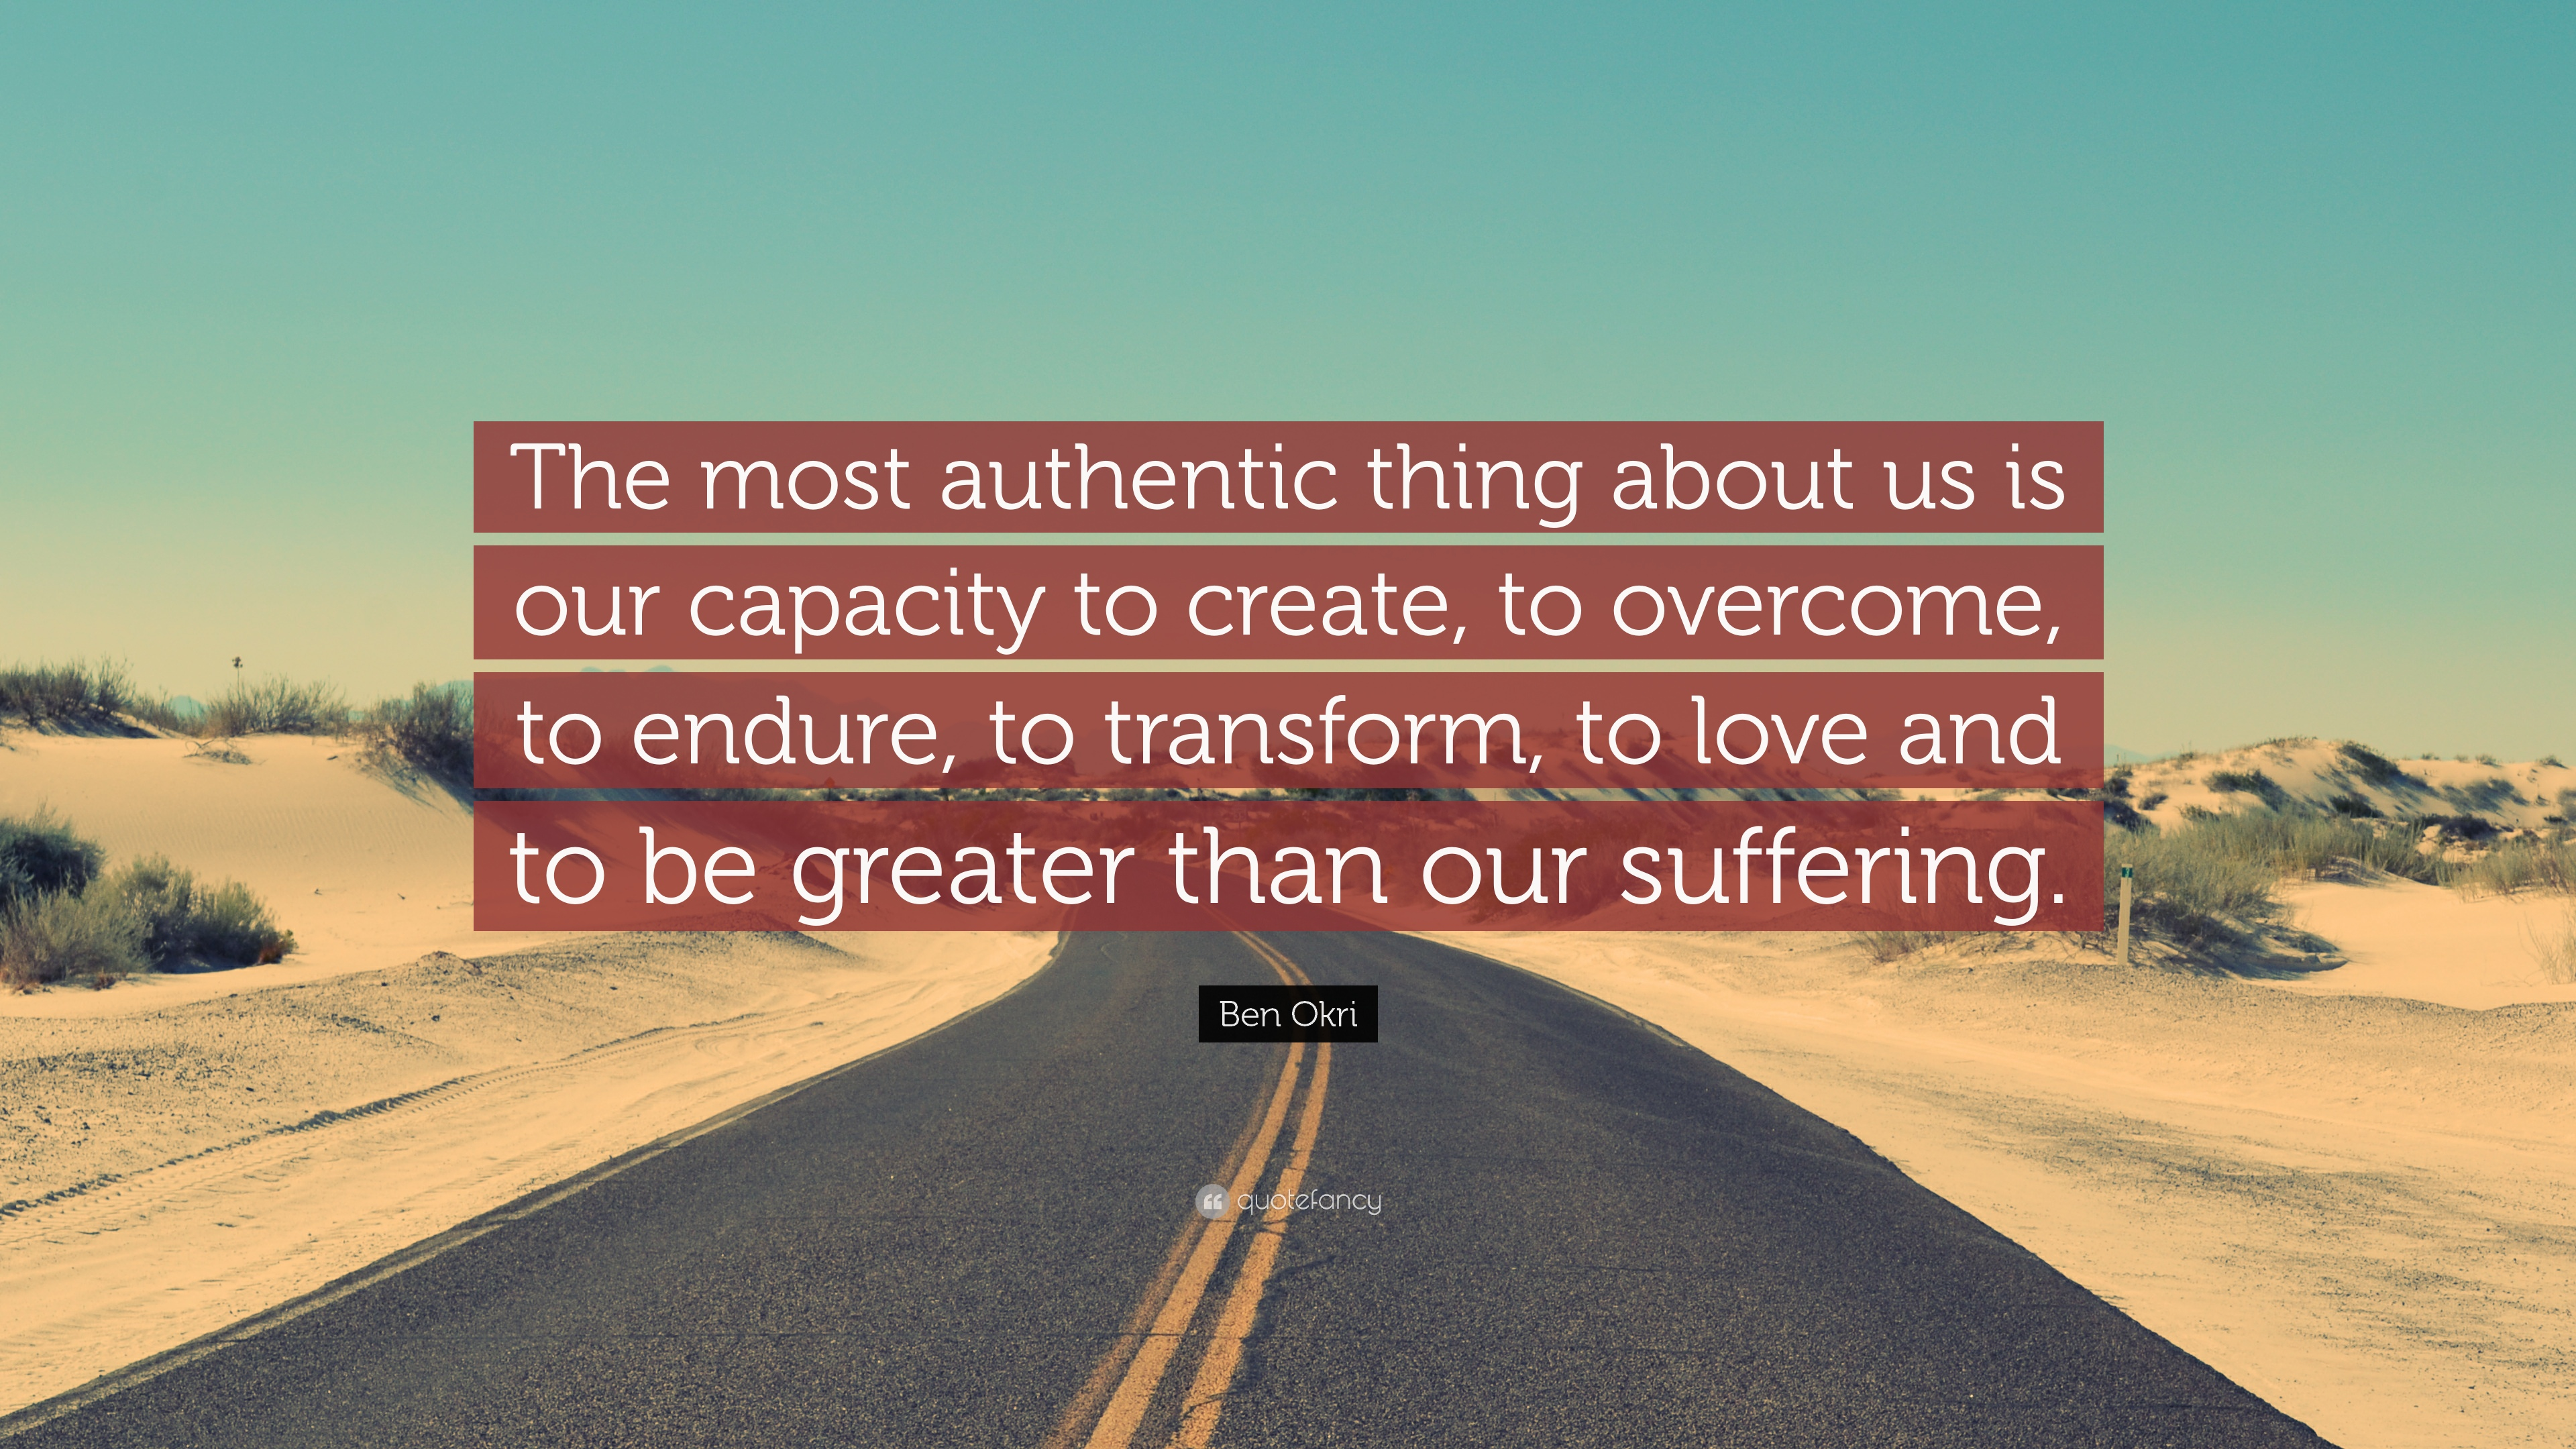 Merveilleux Ben Okri Quote: U201cThe Most Authentic Thing About Us Is Our Capacity To Create